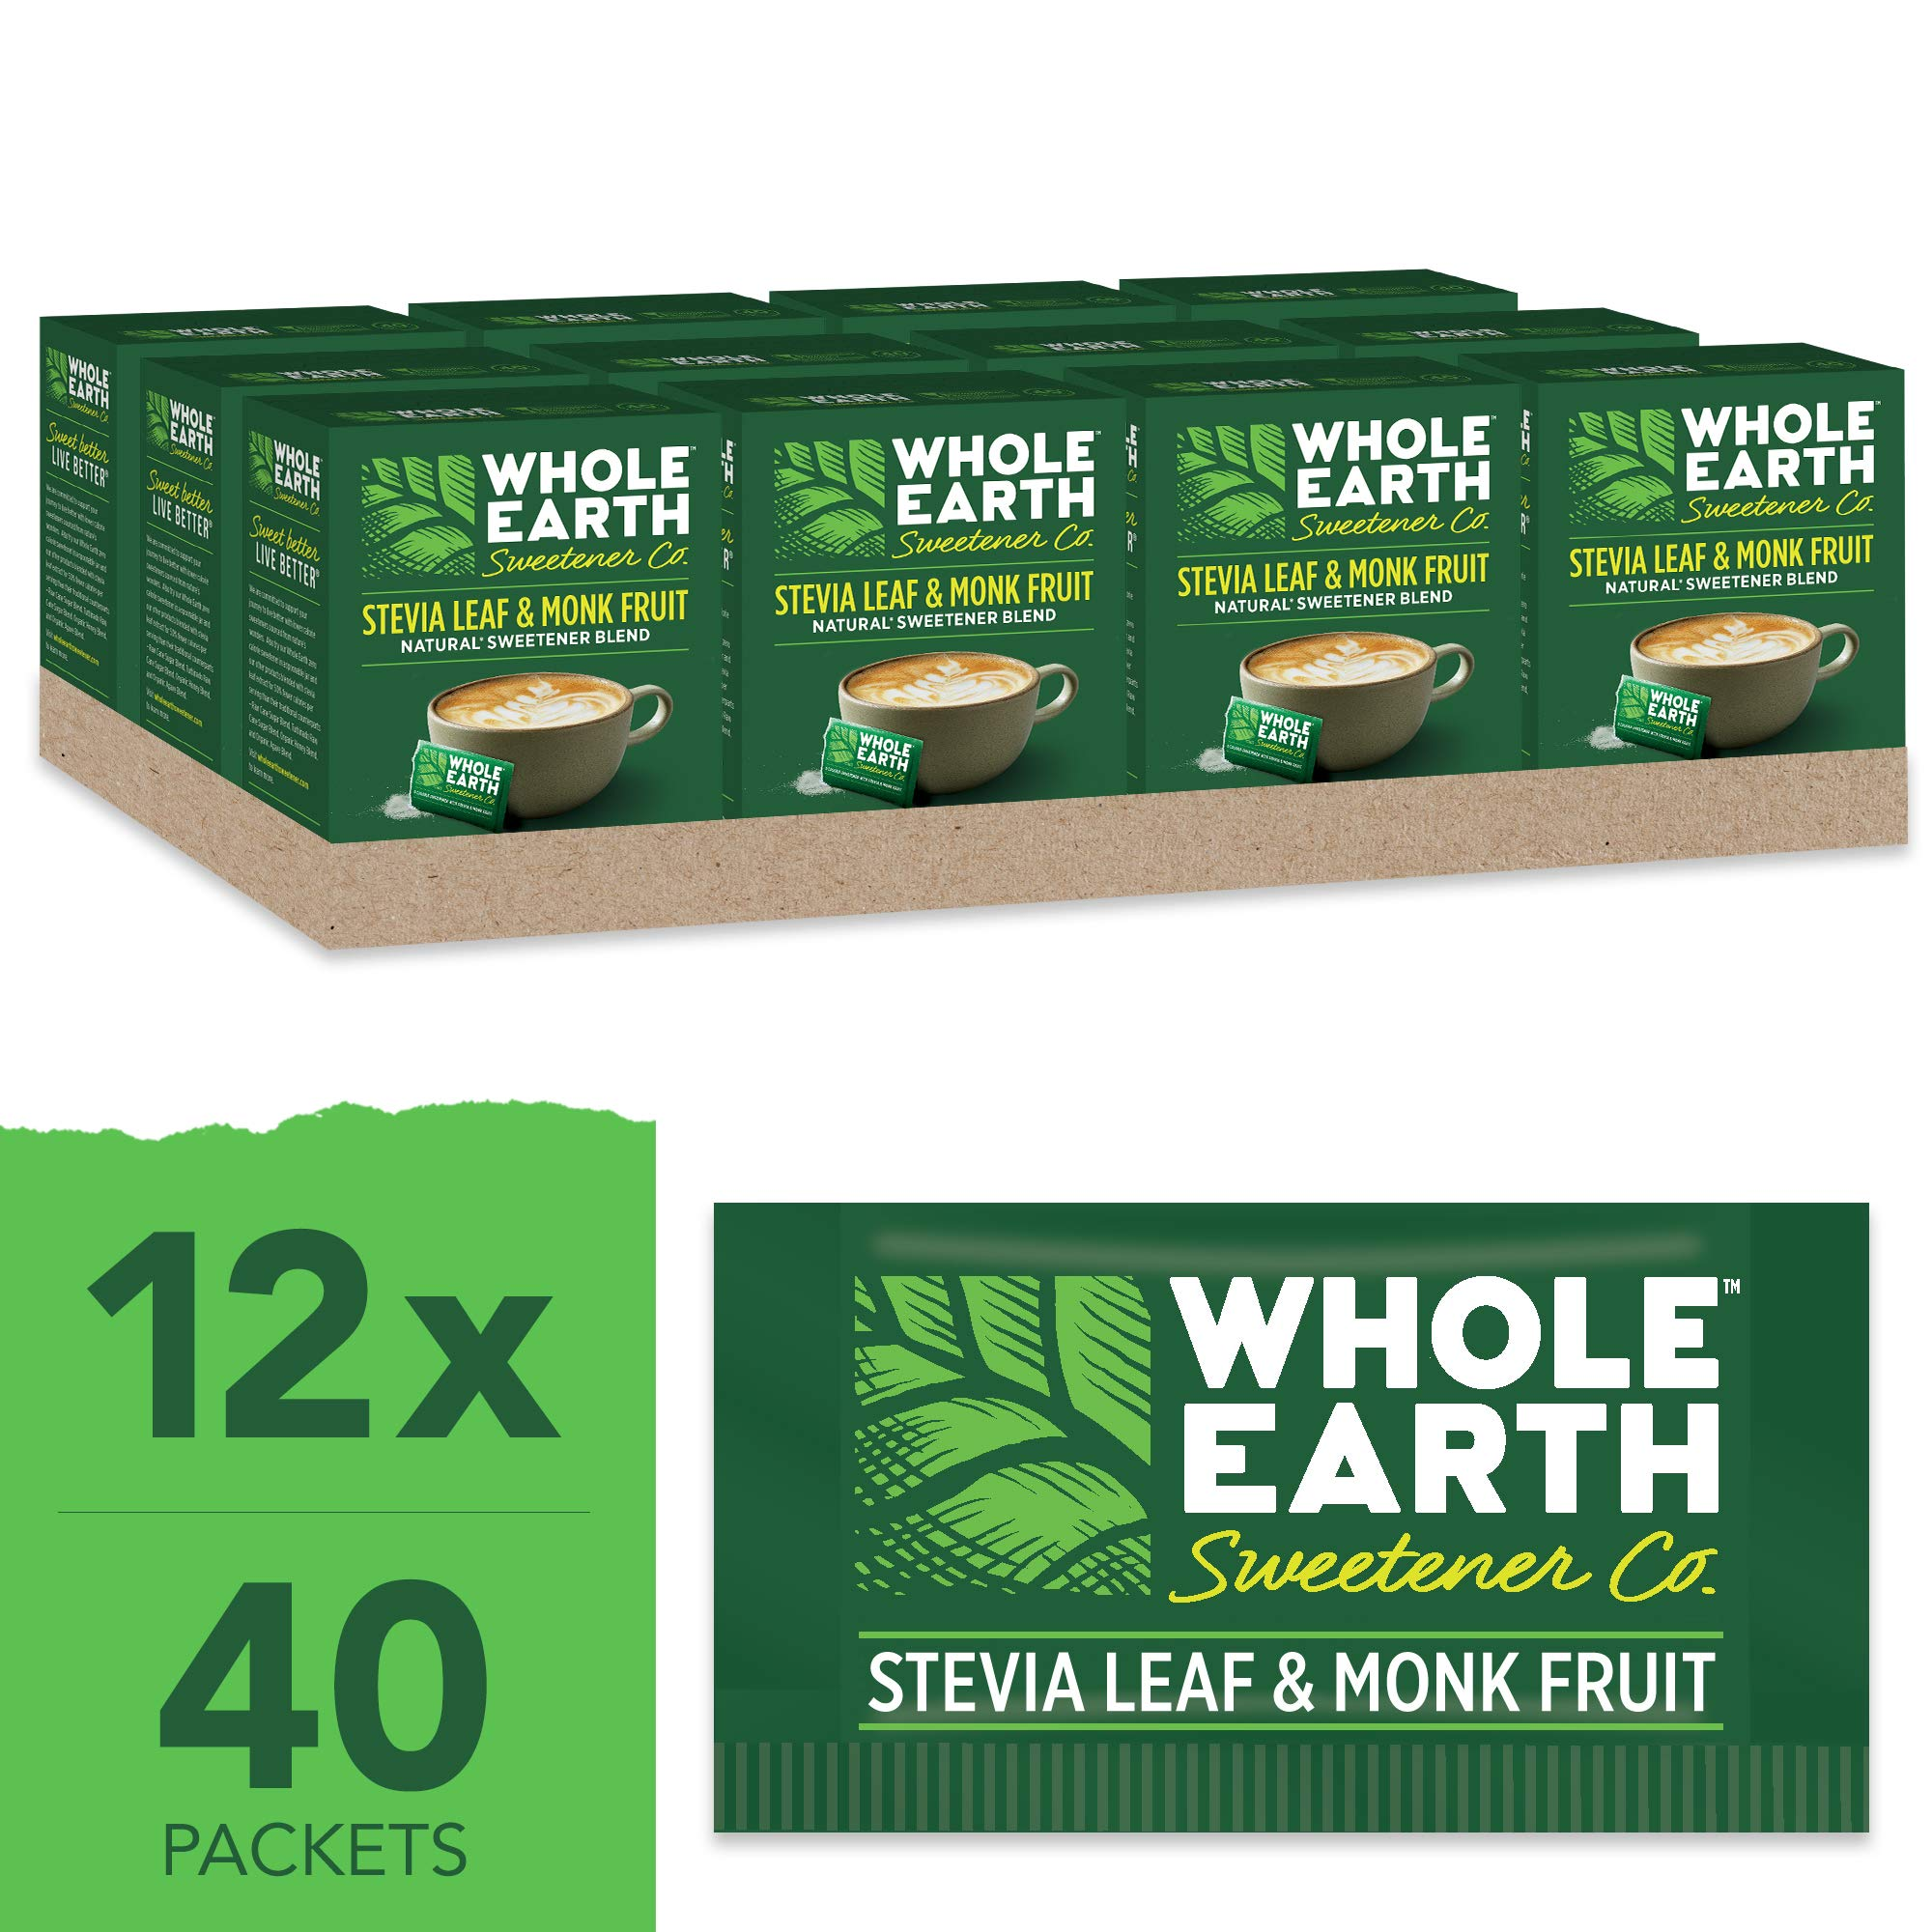 WHOLE EARTH SWEETENER CO. Stevia & Monk Fruit Sweetener, Erythritol Sweetener, Sweet Leaf Stevia Packets, Sugar Substitute, Natural Sweetener, 40-Count (Pack of 12) by Whole Earth Sweetener Company